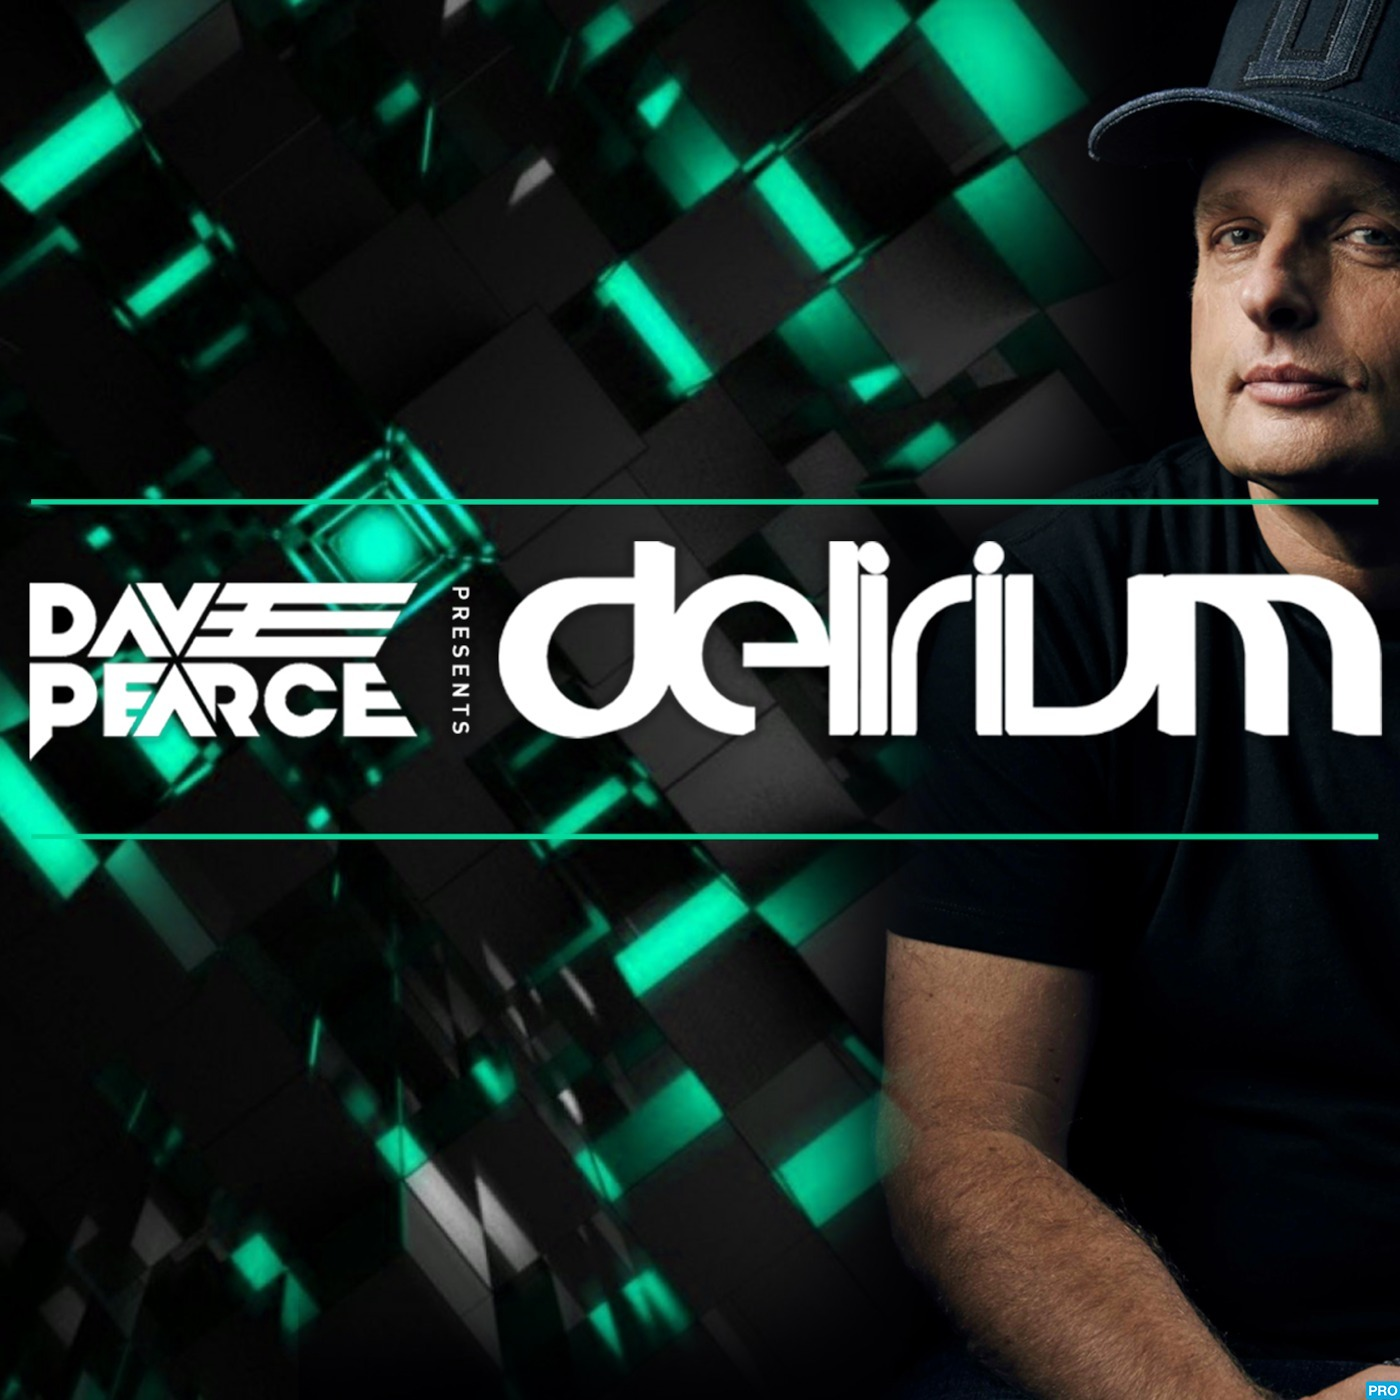 Dave Pearce Presents Delirium